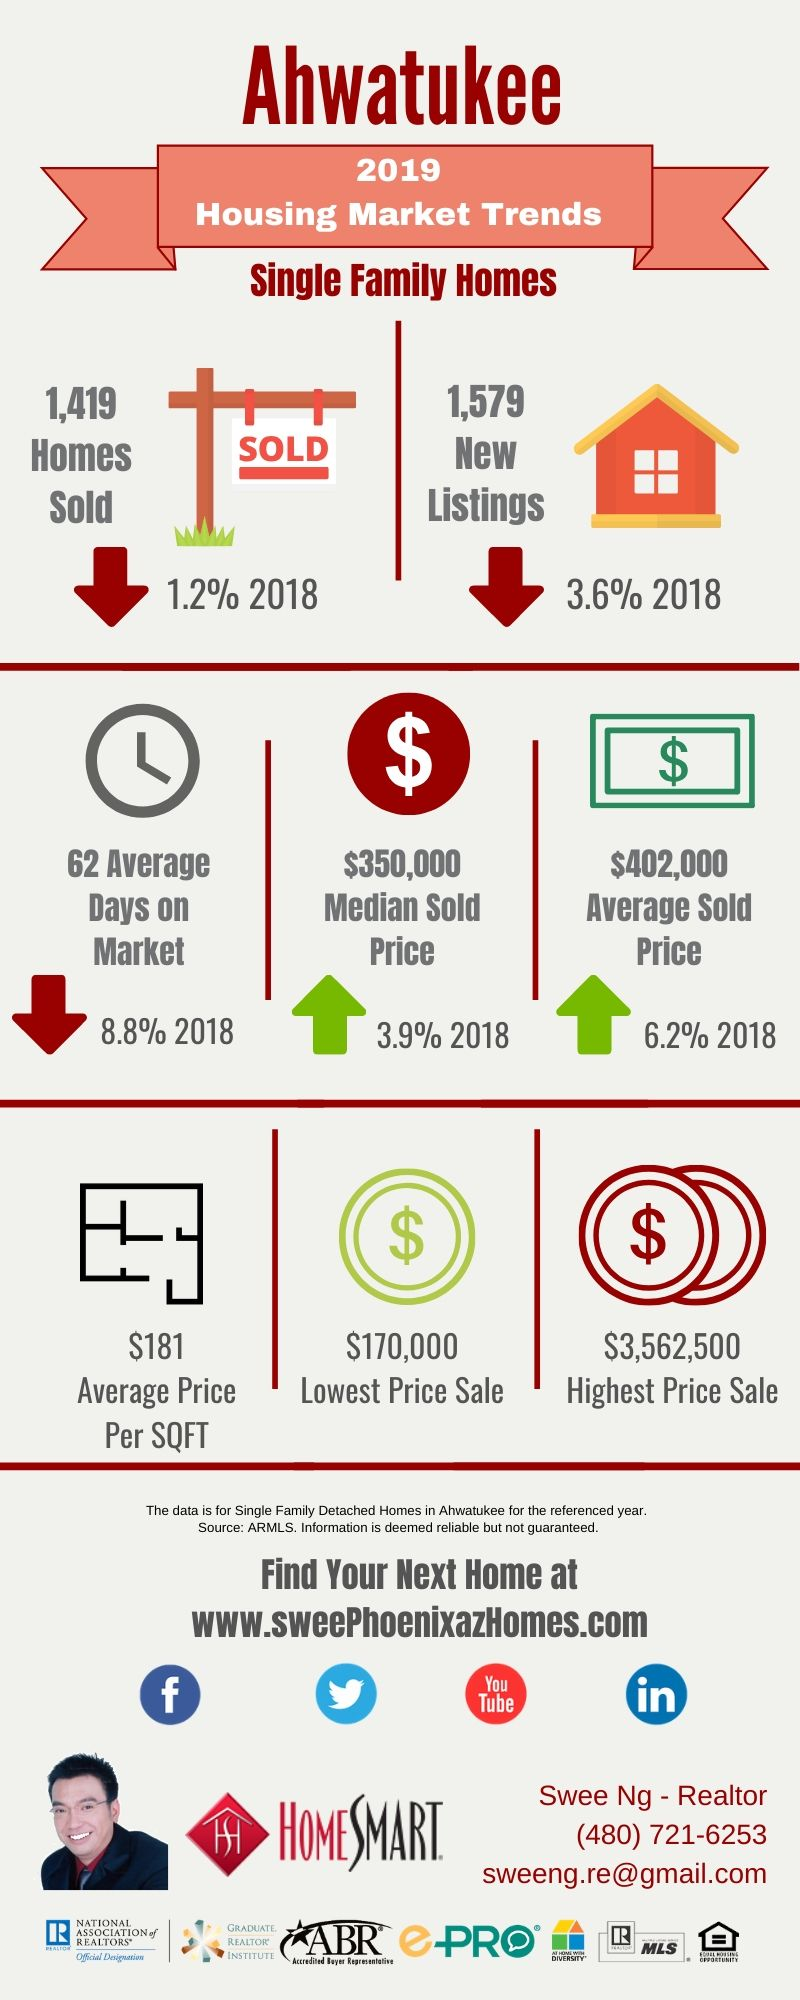 2019 Ahwatukee Housing Market Trends Report, House Value, Real Estate and Statistic by Swee Ng